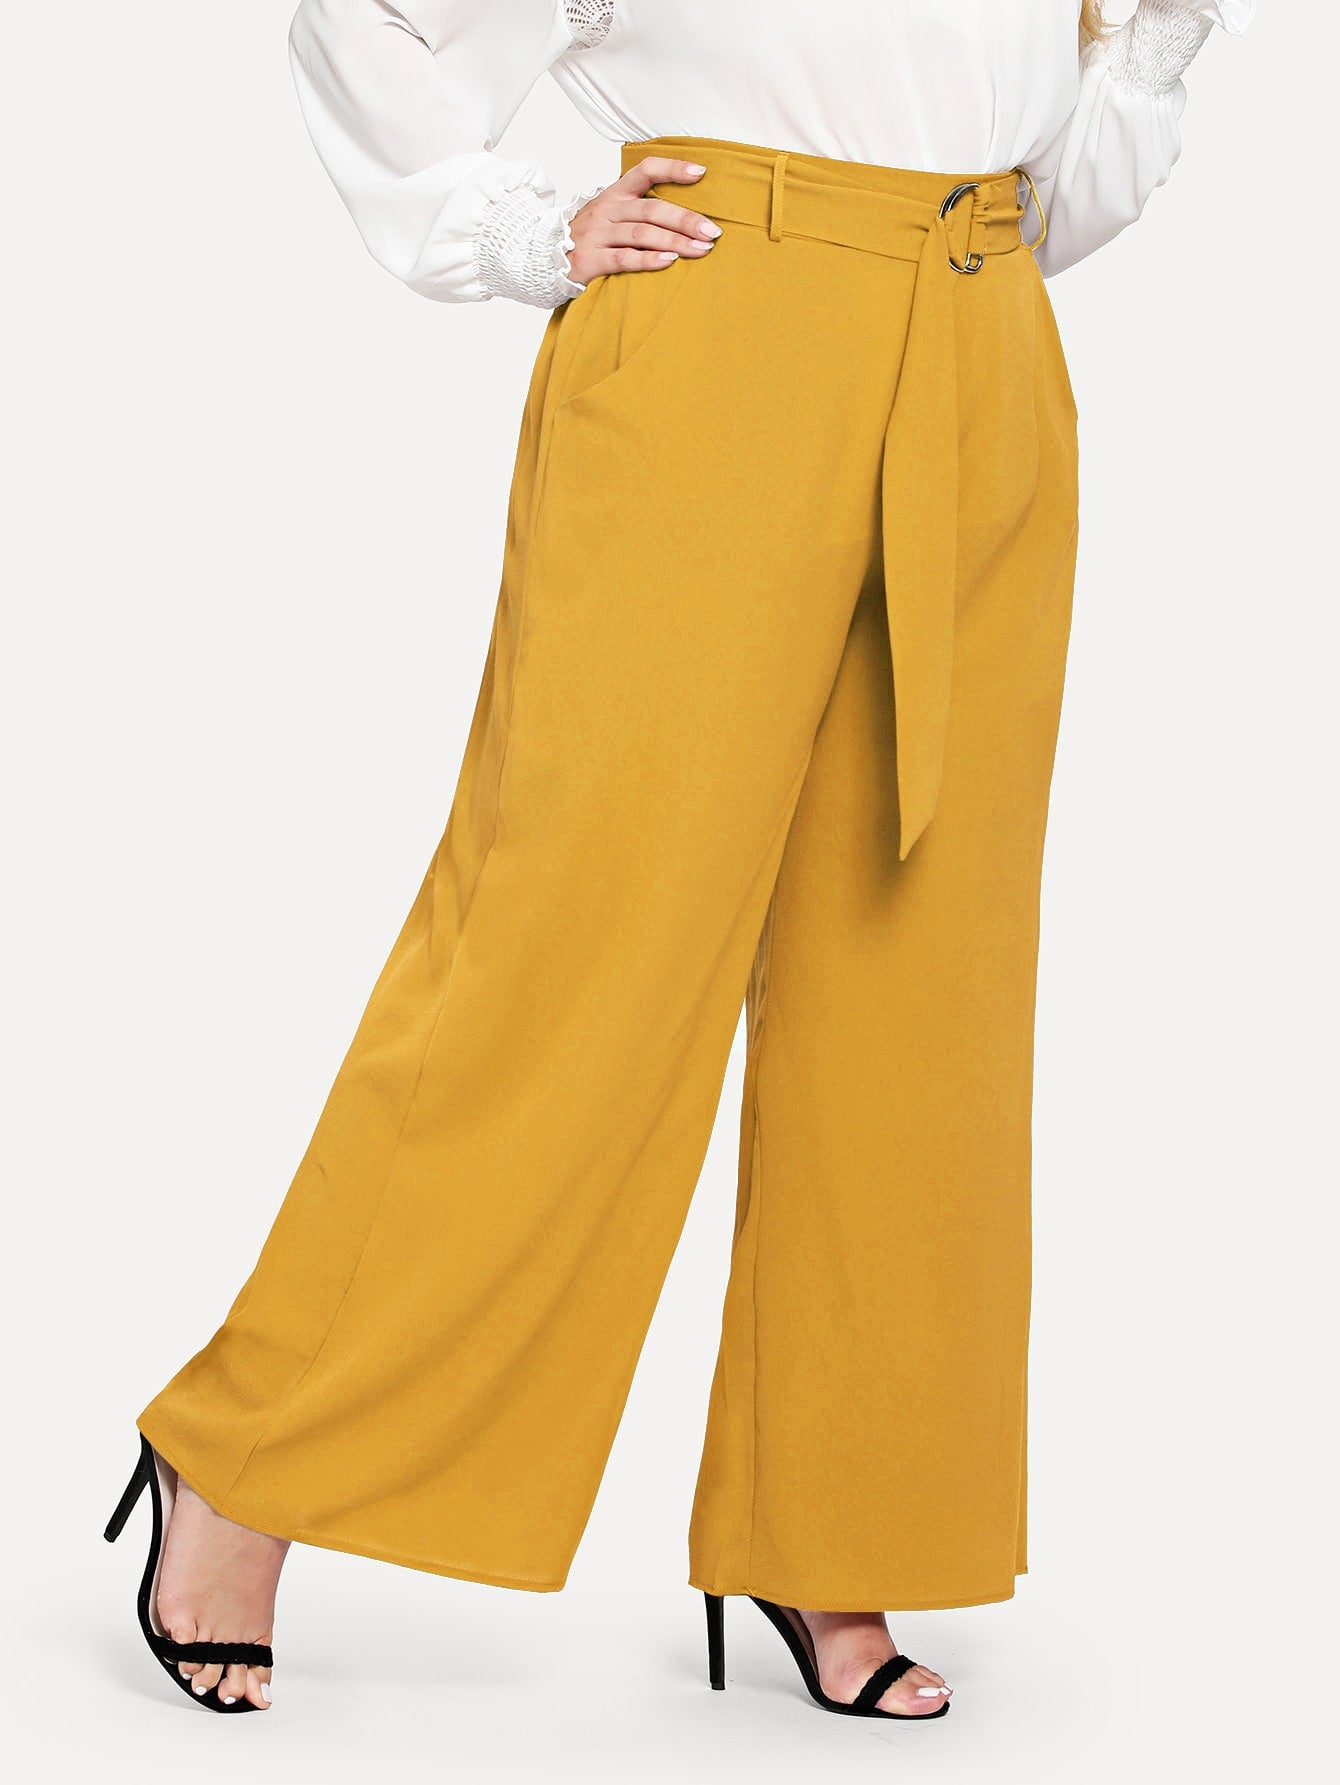 Plus Adjustable Belted Wide Leg Trousers-Regular-Trendy-JayBoutique-Yellow-0XL-Trendy-JayBoutique